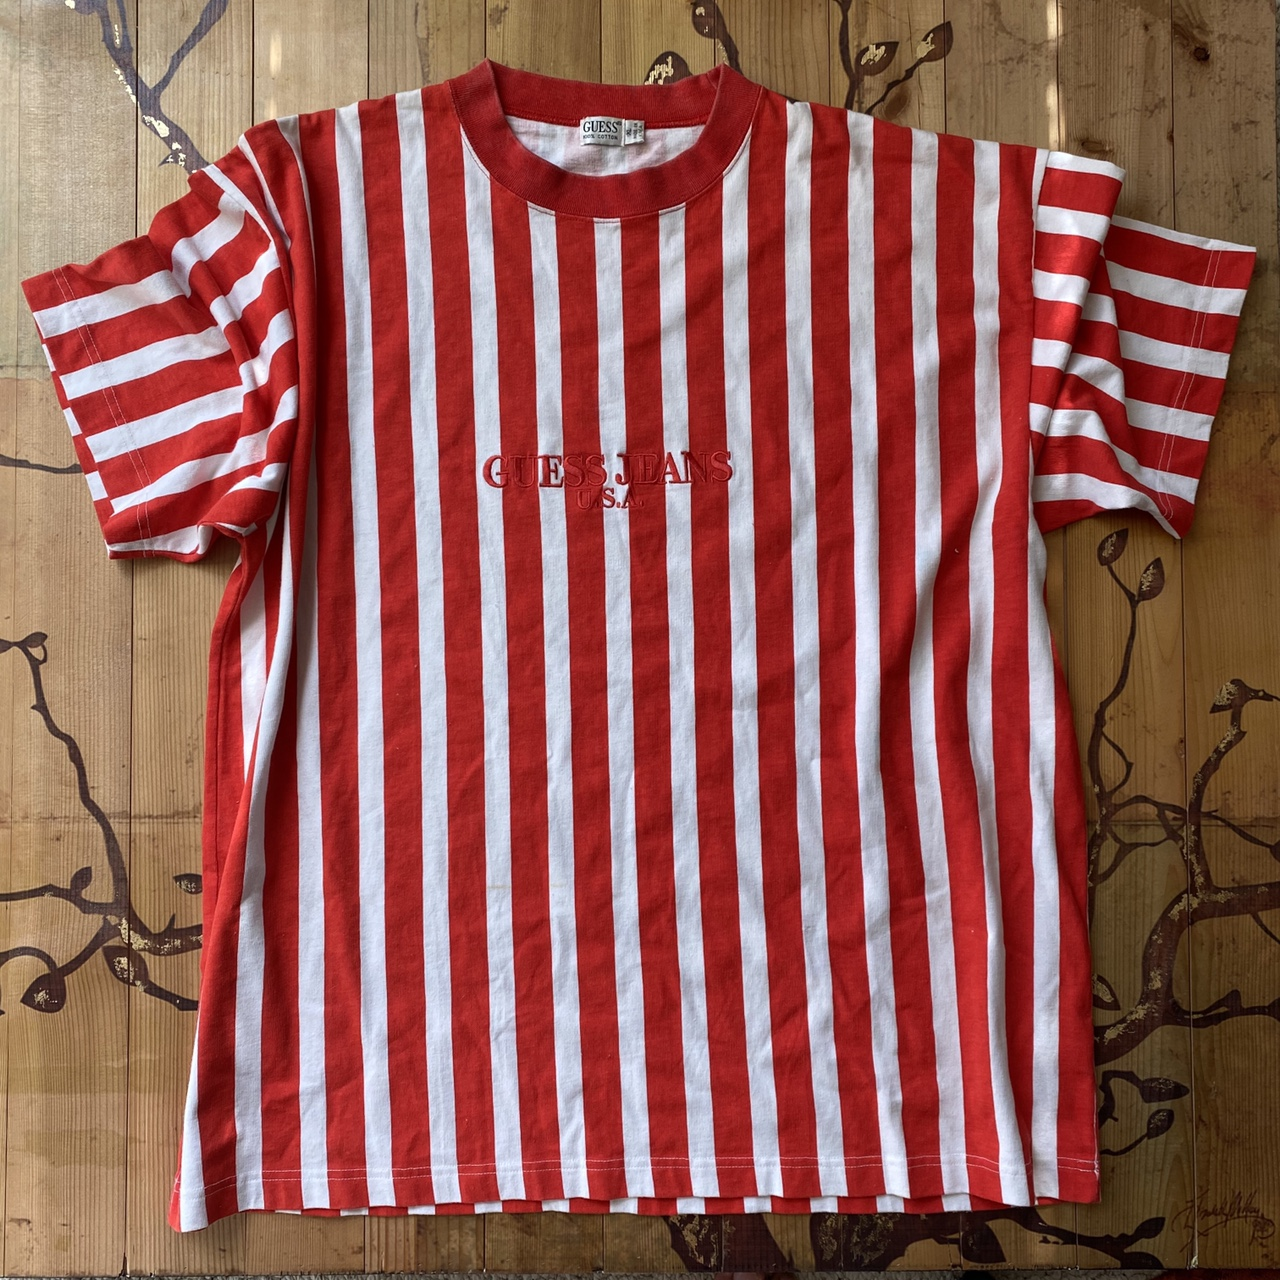 Product Image 2 - Vintage guess striped shirt  THIS